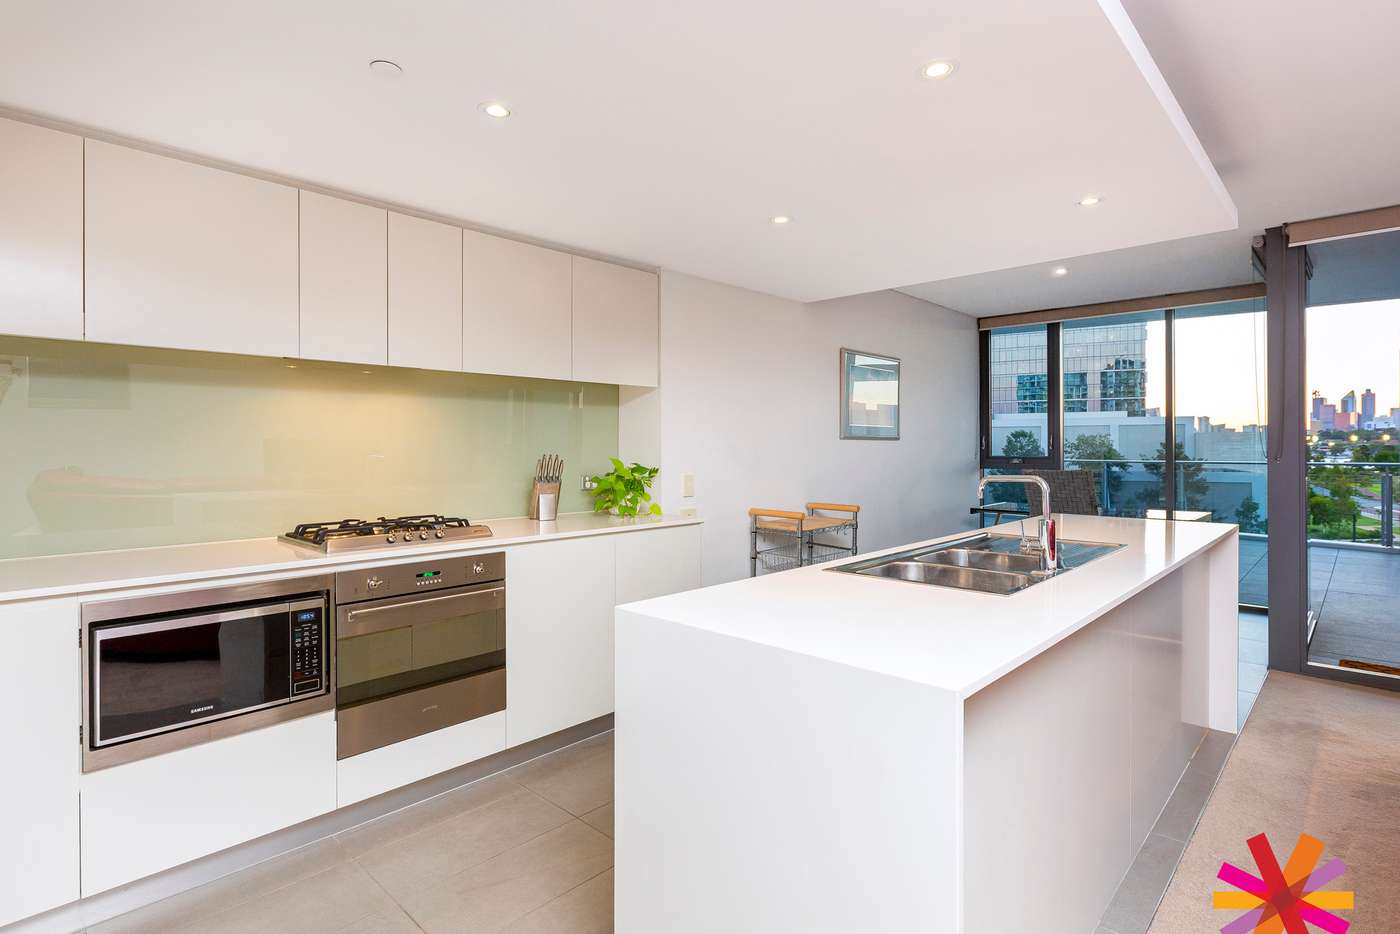 Seventh view of Homely apartment listing, 302/21 Bow River Crescent, Burswood WA 6100